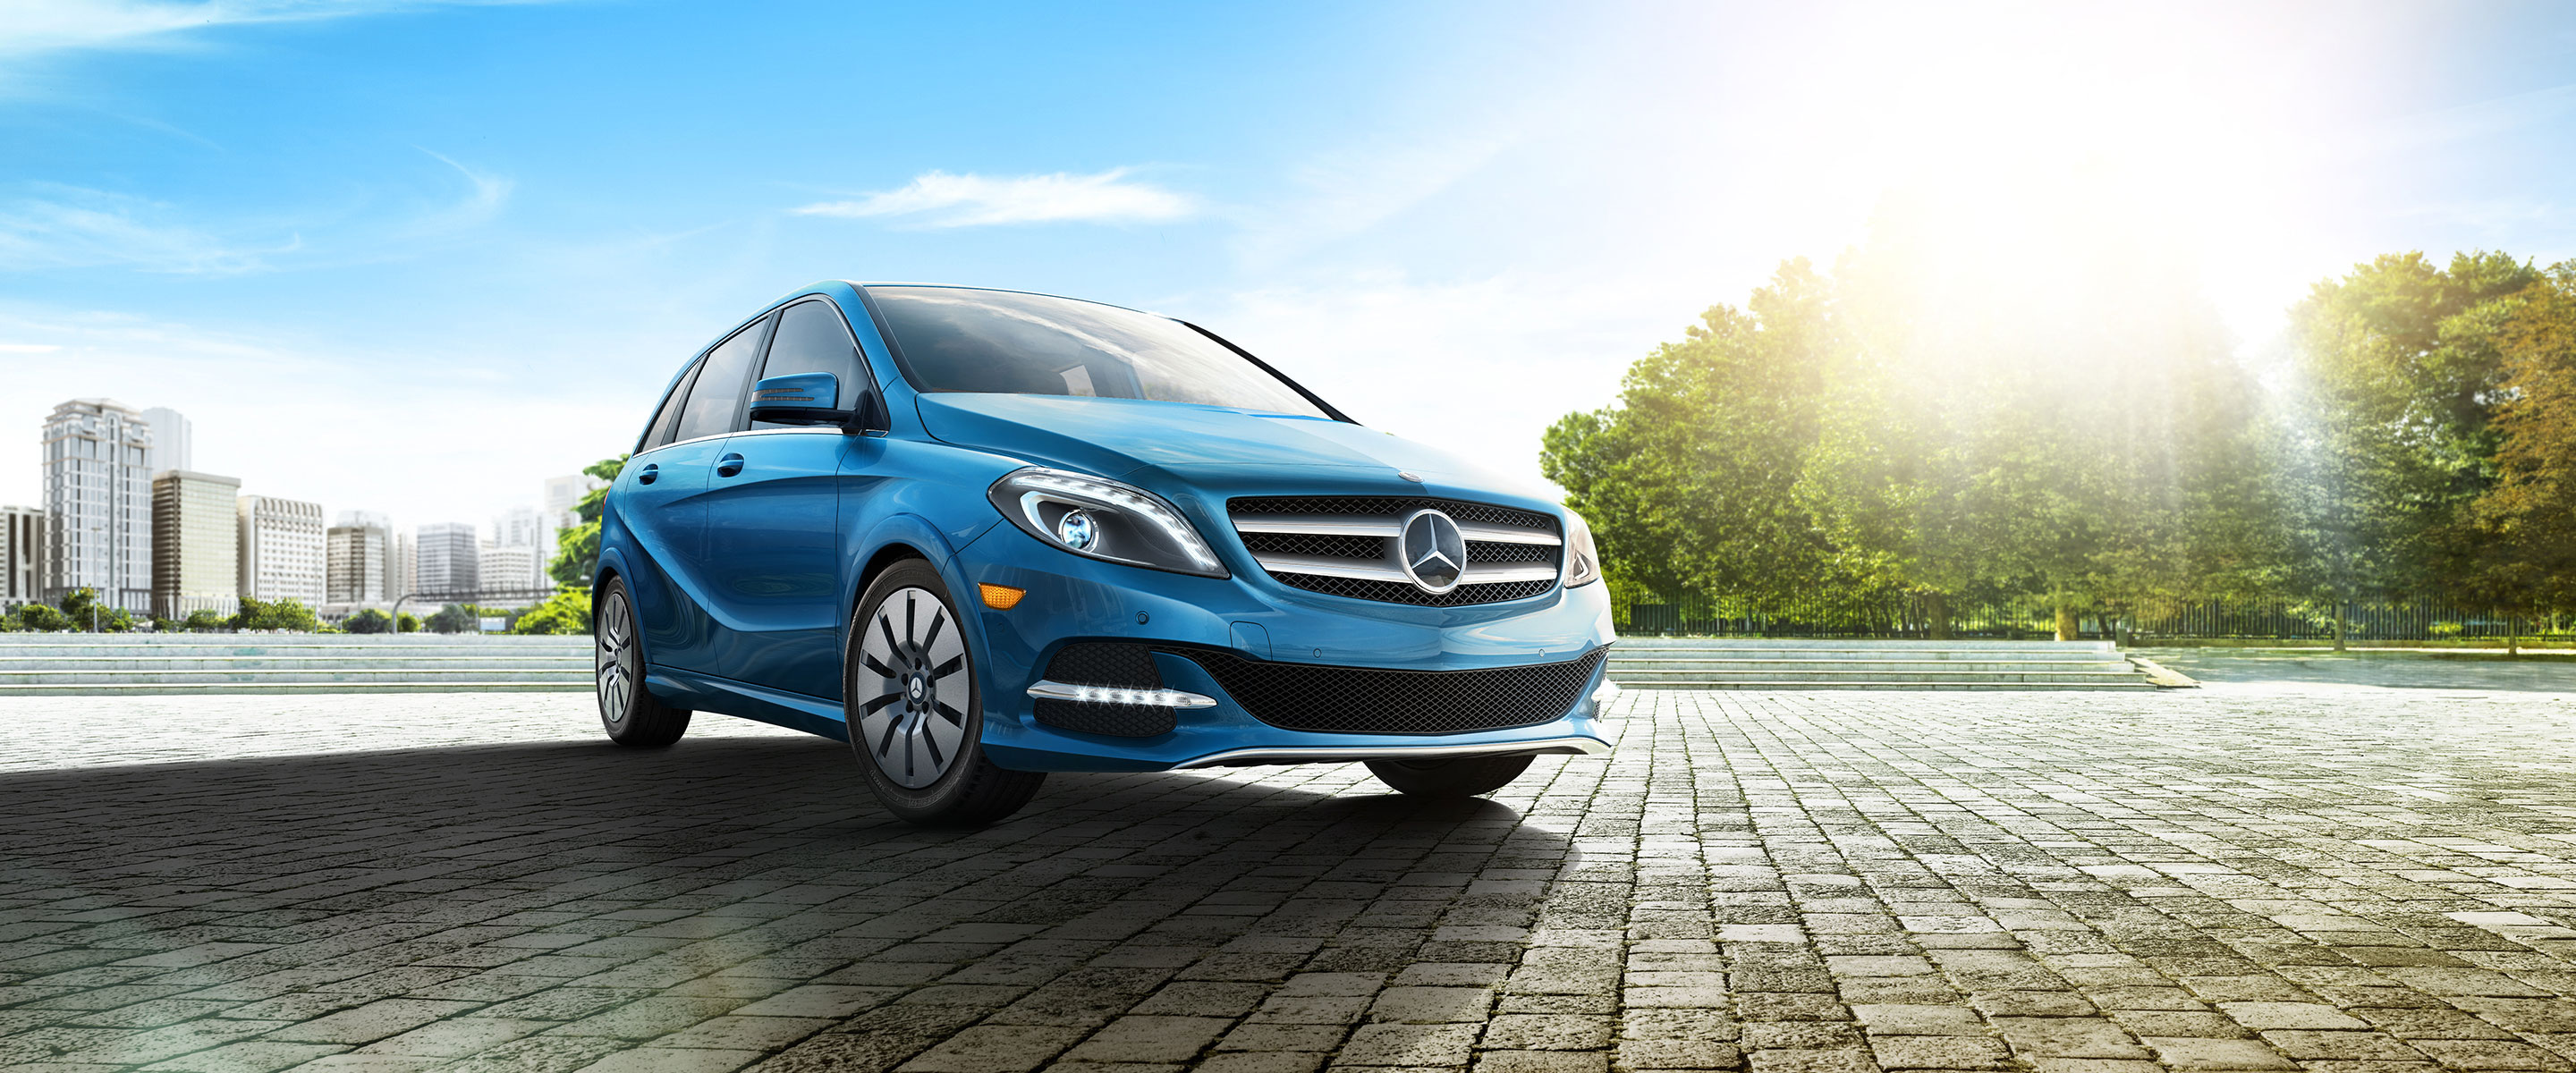 New mercedes benz b class buy lease and finance specials for Mercedes benz financing